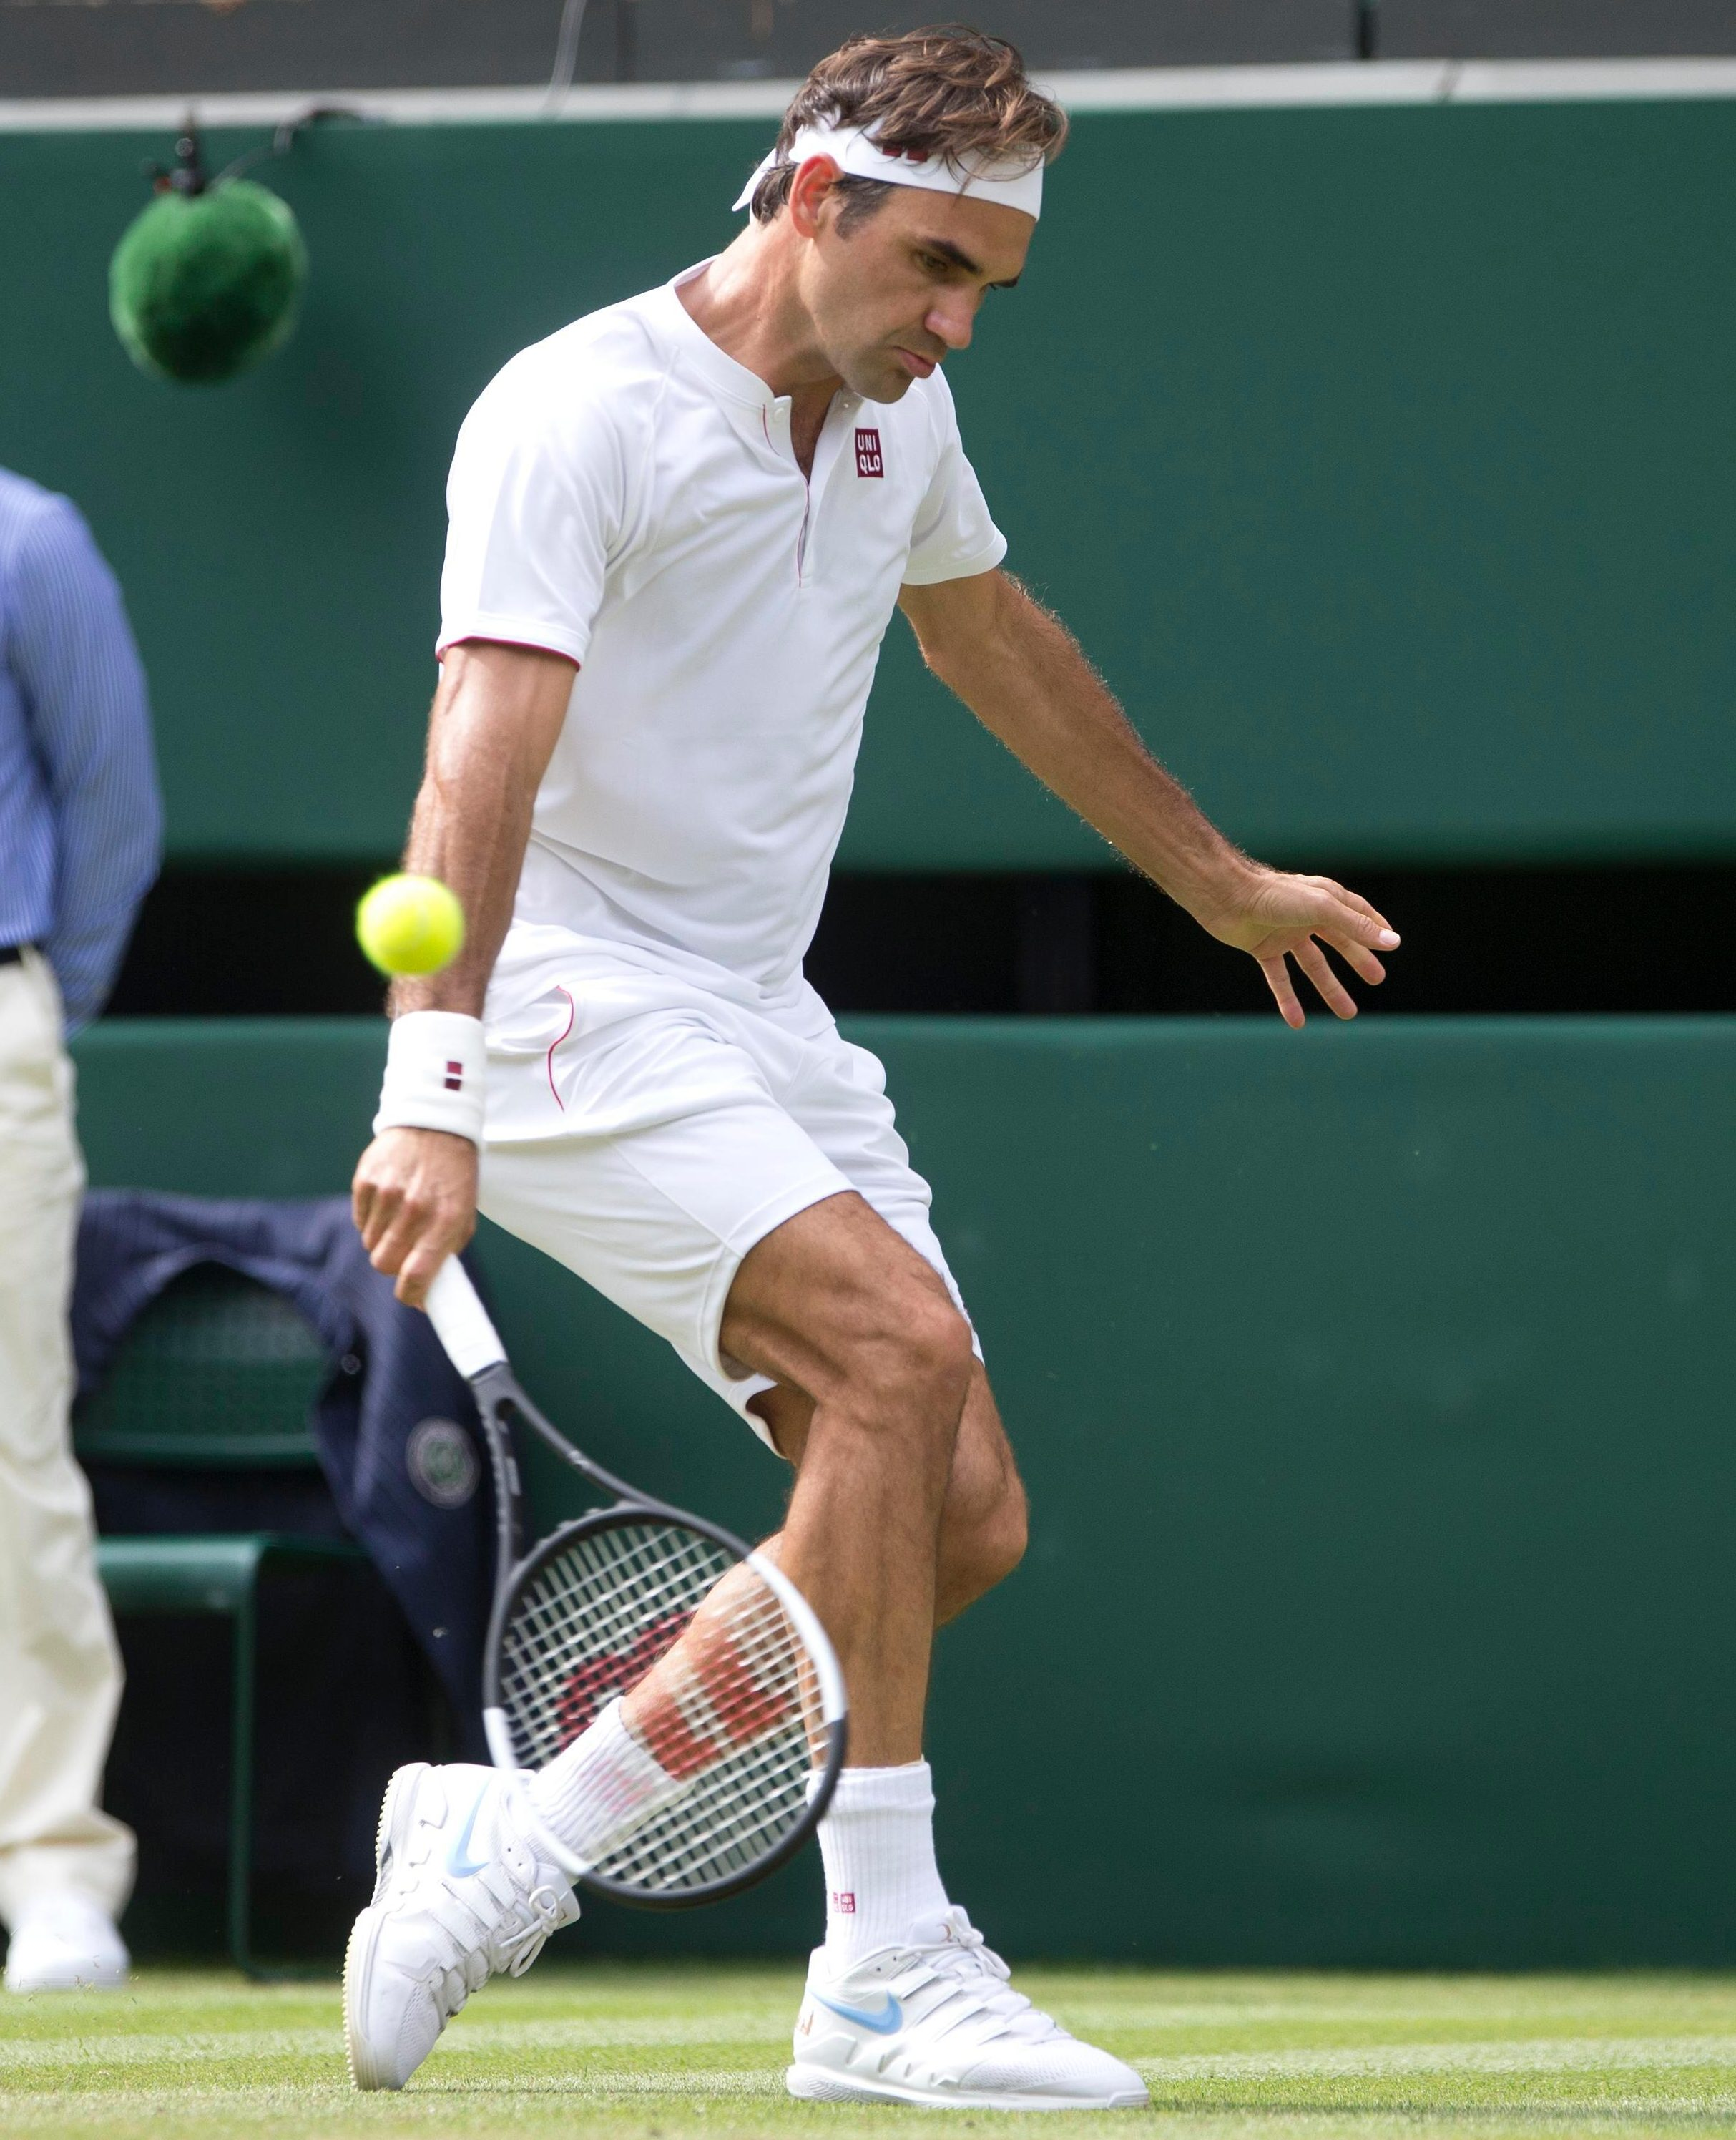 Federer is sublime at tennis and also pristine in his turnout on court